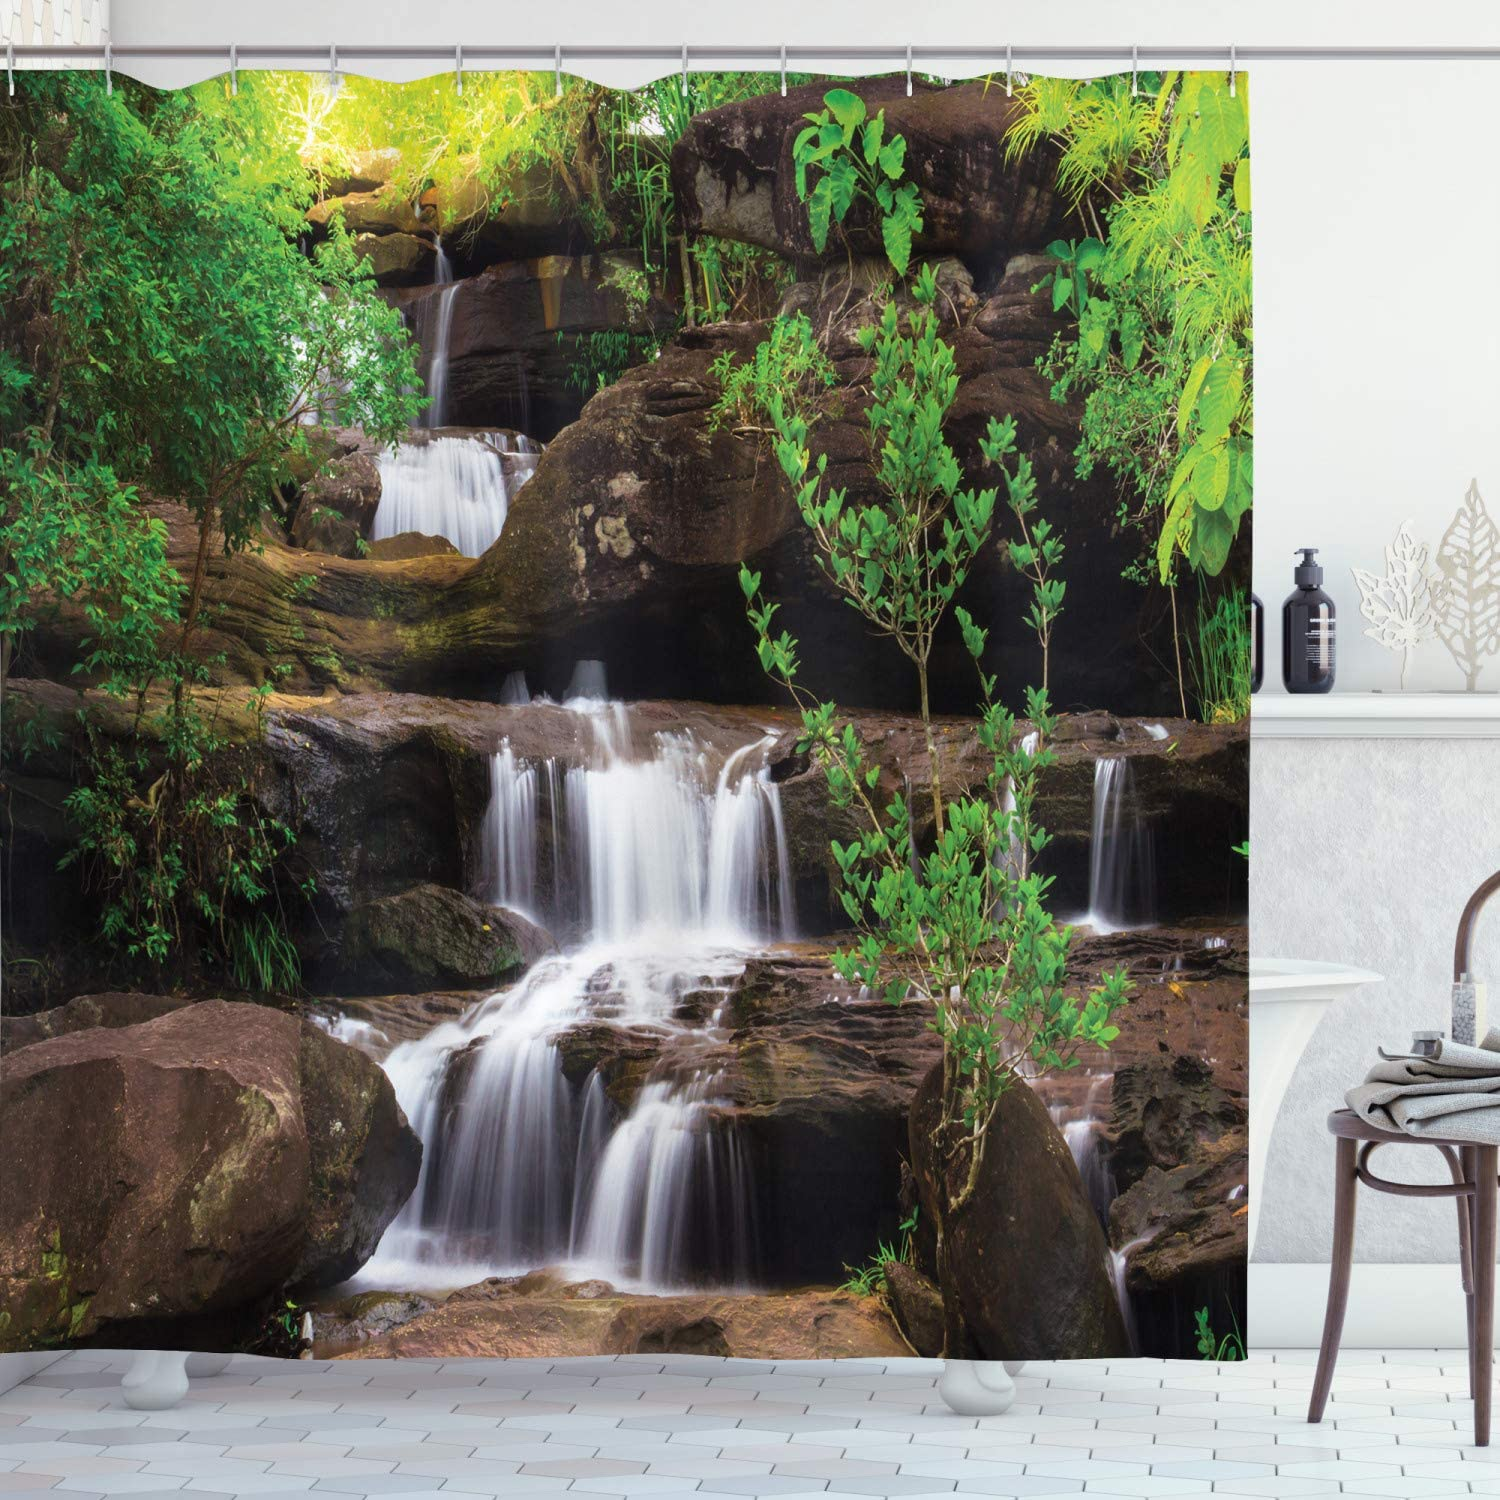 Amazon Com Ambesonne Waterfall Shower Curtain Little Waterfalls Flow On Rock Stairs Surrounded By Long Plants Earth Cloth Fabric Bathroom Decor Set With Hooks 70 Long Brown White Home Kitchen